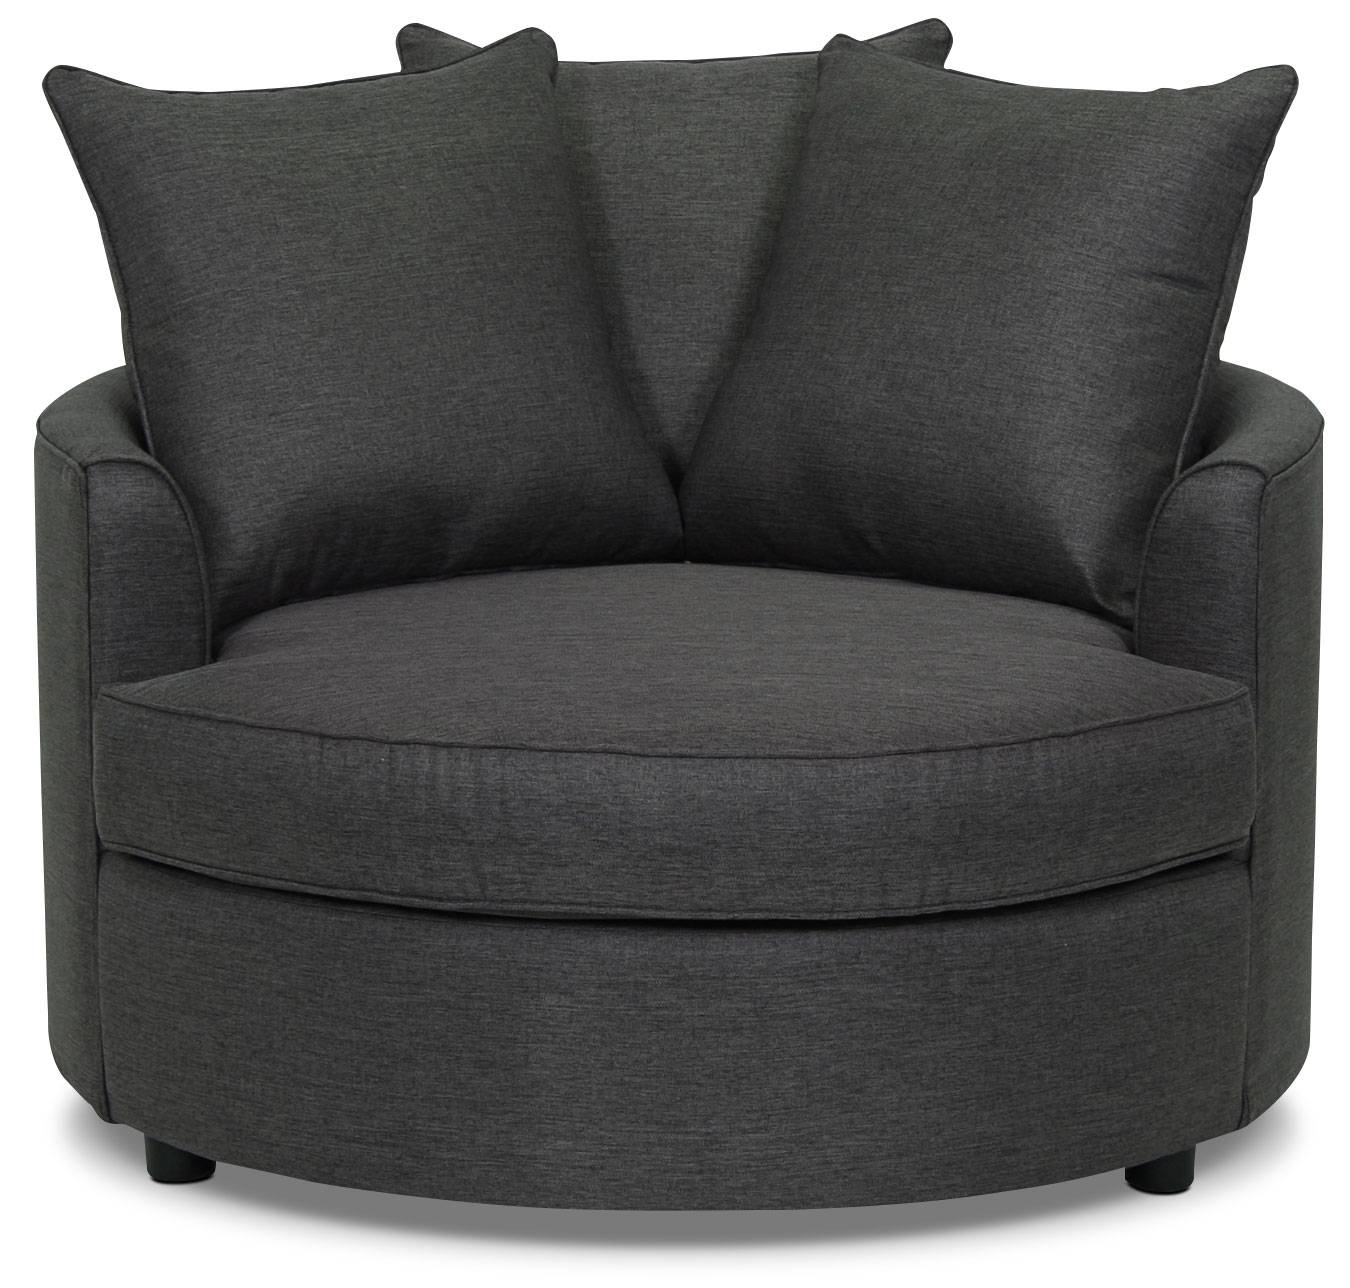 Sofas Center : Circle Sofa Chair Epicnd For Your Interior Home for Round Sofa Chair (Image 25 of 30)